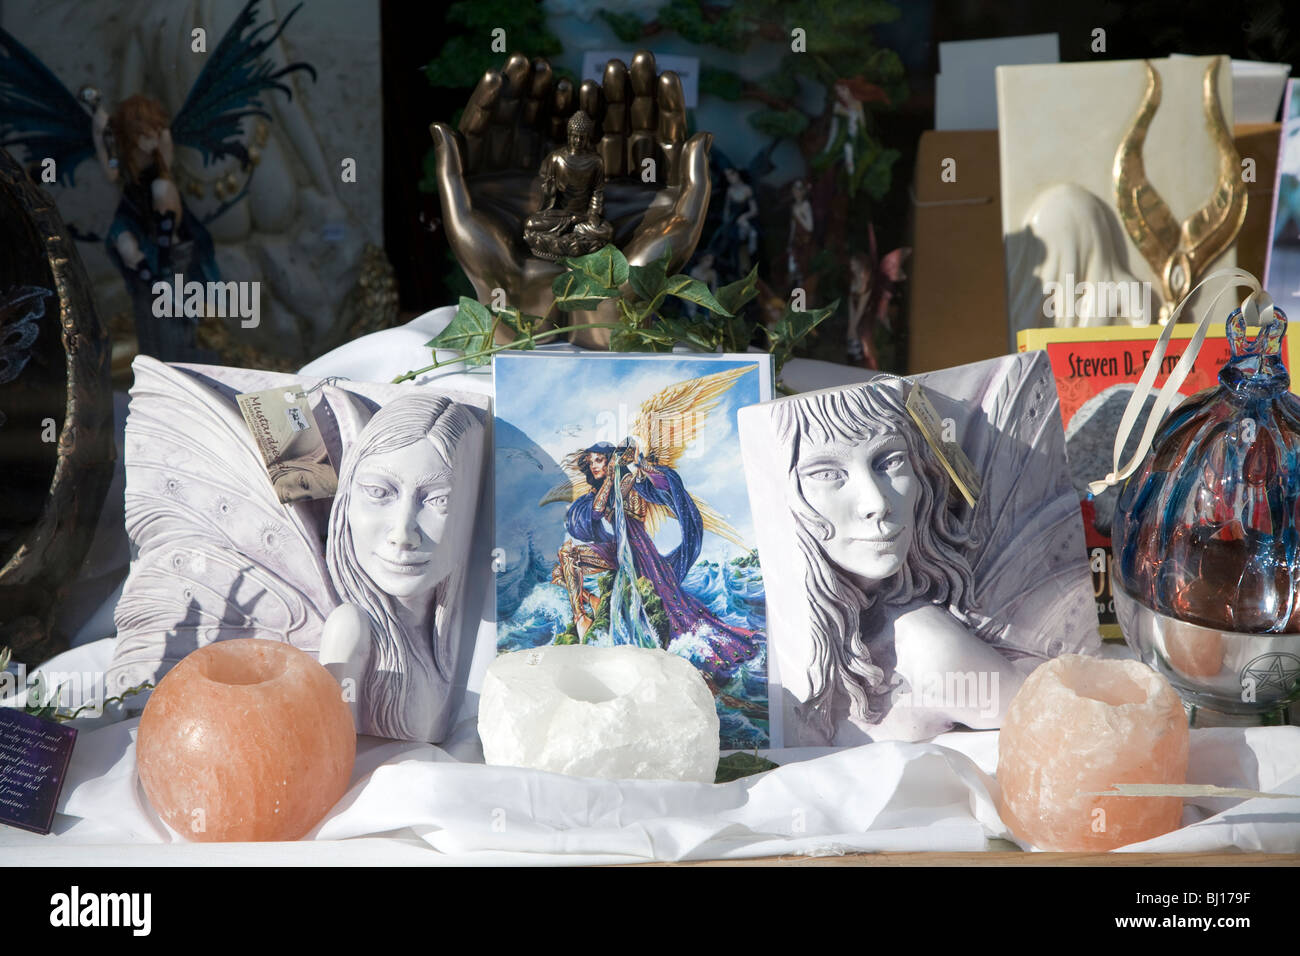 Window display in alternative mystical crystal shop - Stock Image